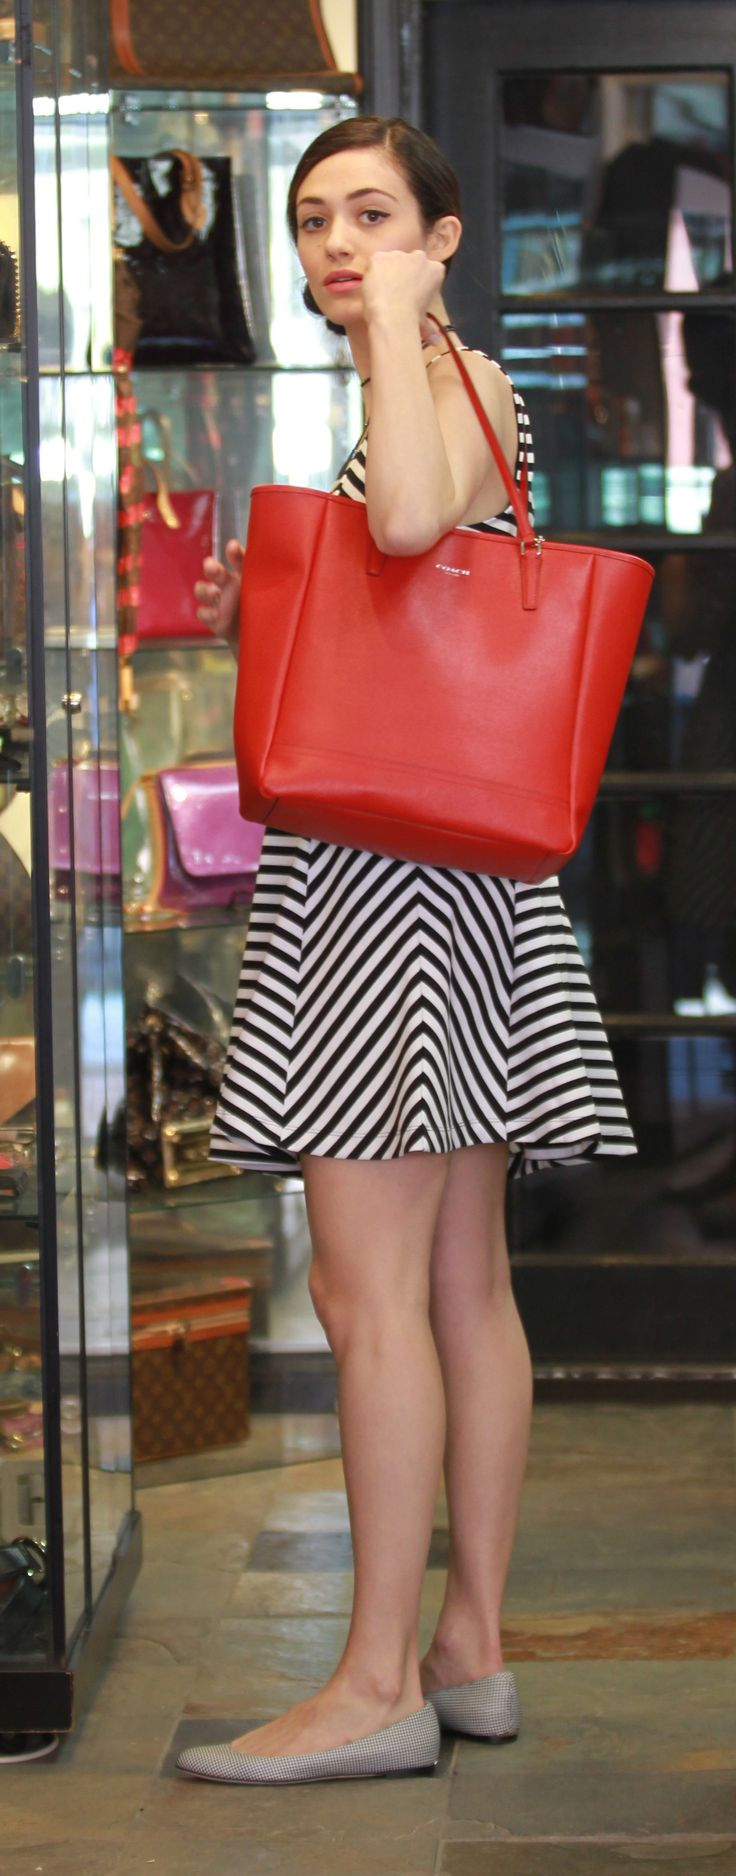 Spotted wearing Coach: Emily Rossum with the Saffiano North/South City Tote. Image Courtesy of Splash News.